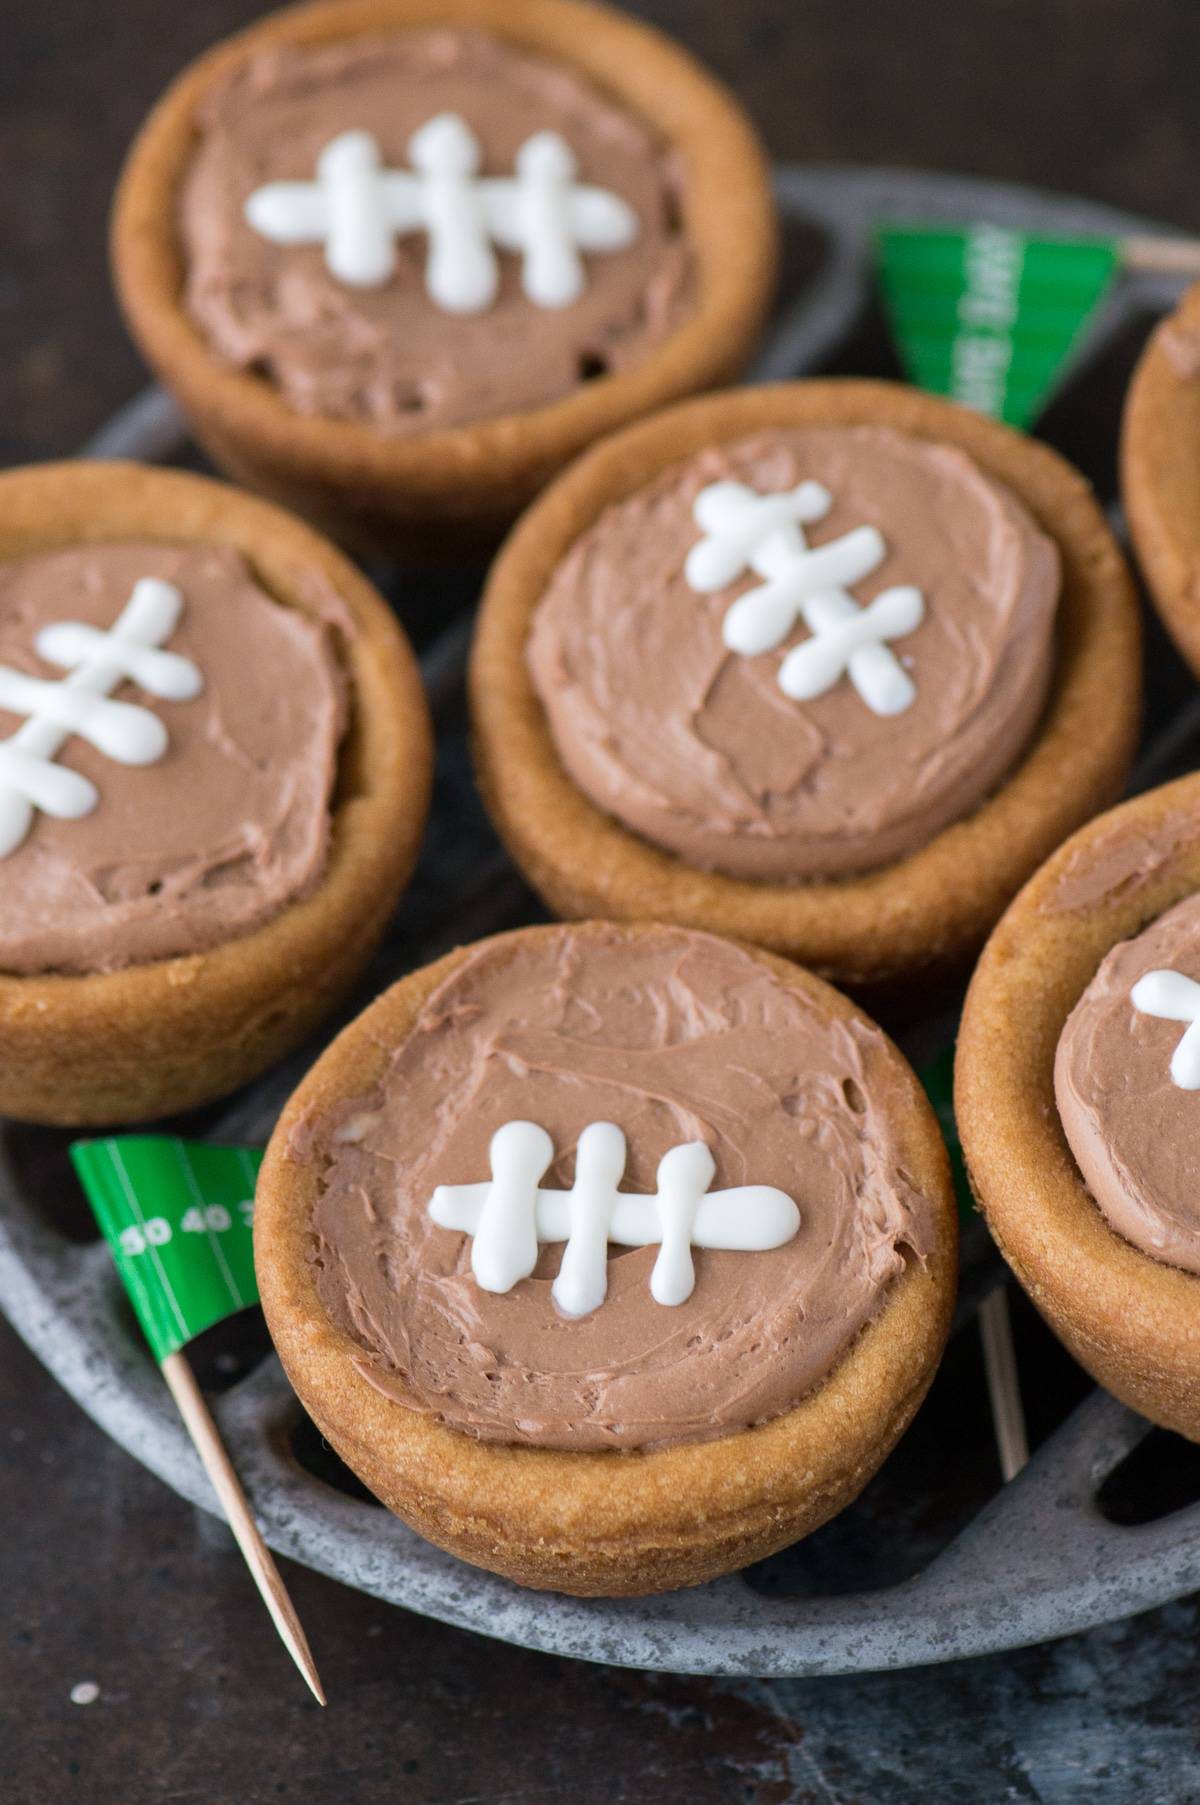 cheesecake sugar cookie football cups on a serving dish with Game Day flags